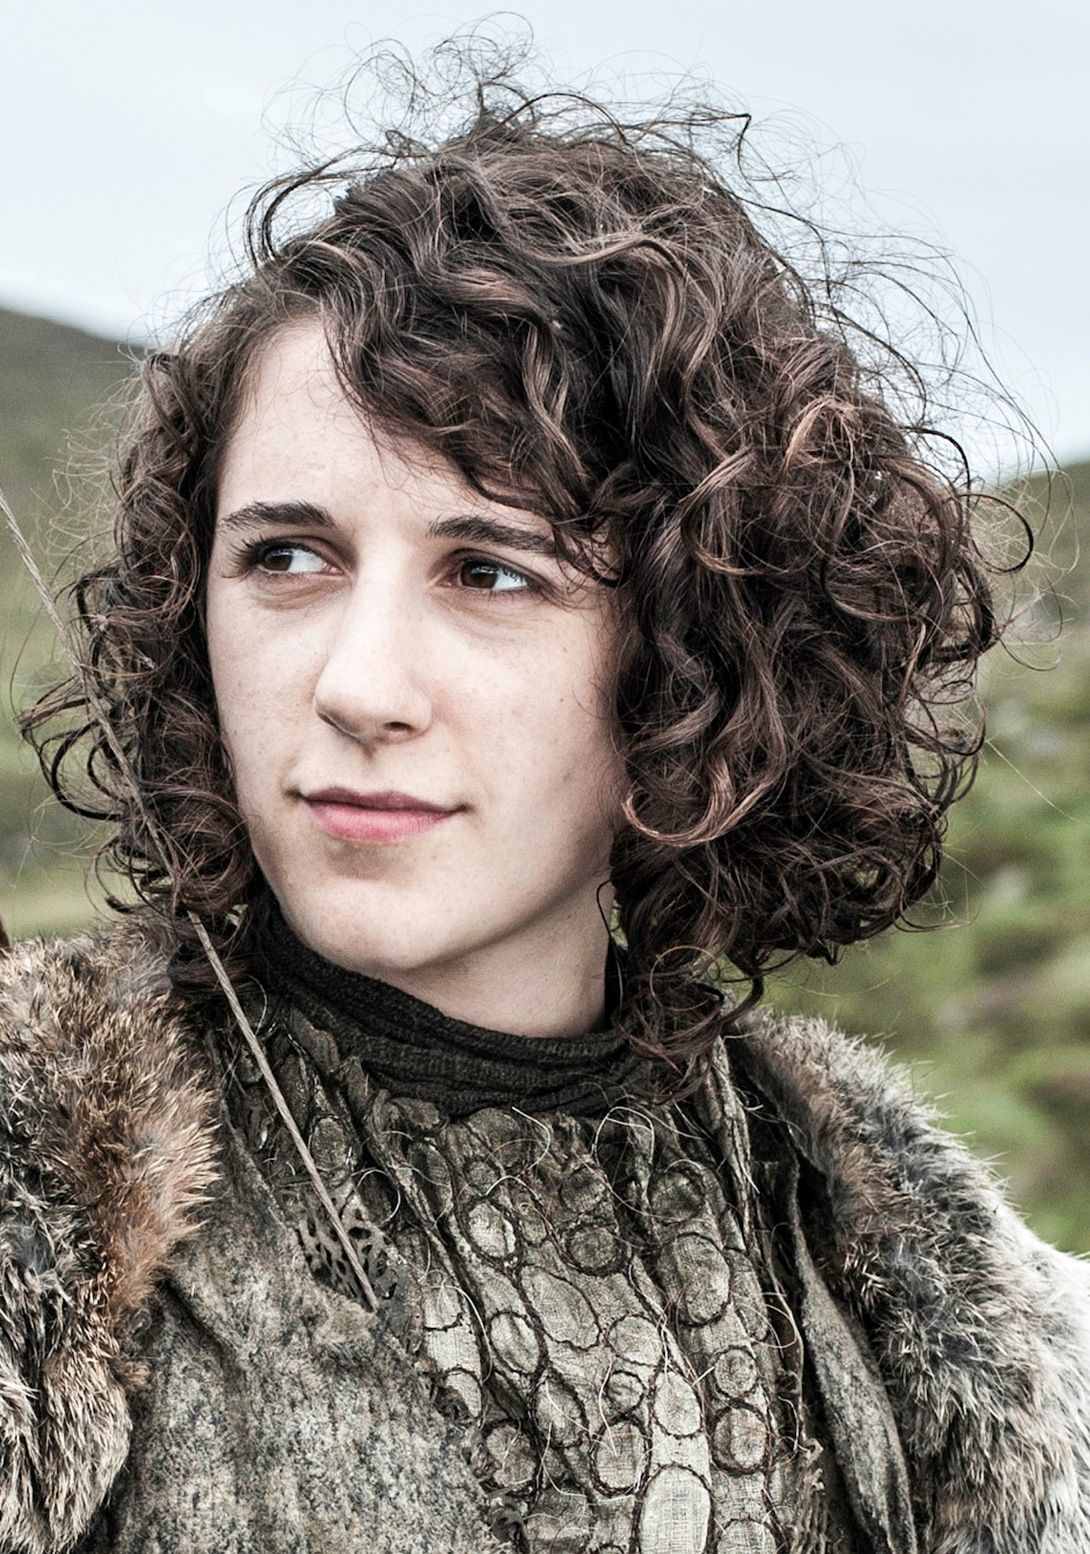 Ellie Kendrick (born 1990) nudes (84 foto and video), Sexy, Fappening, Boobs, lingerie 2018